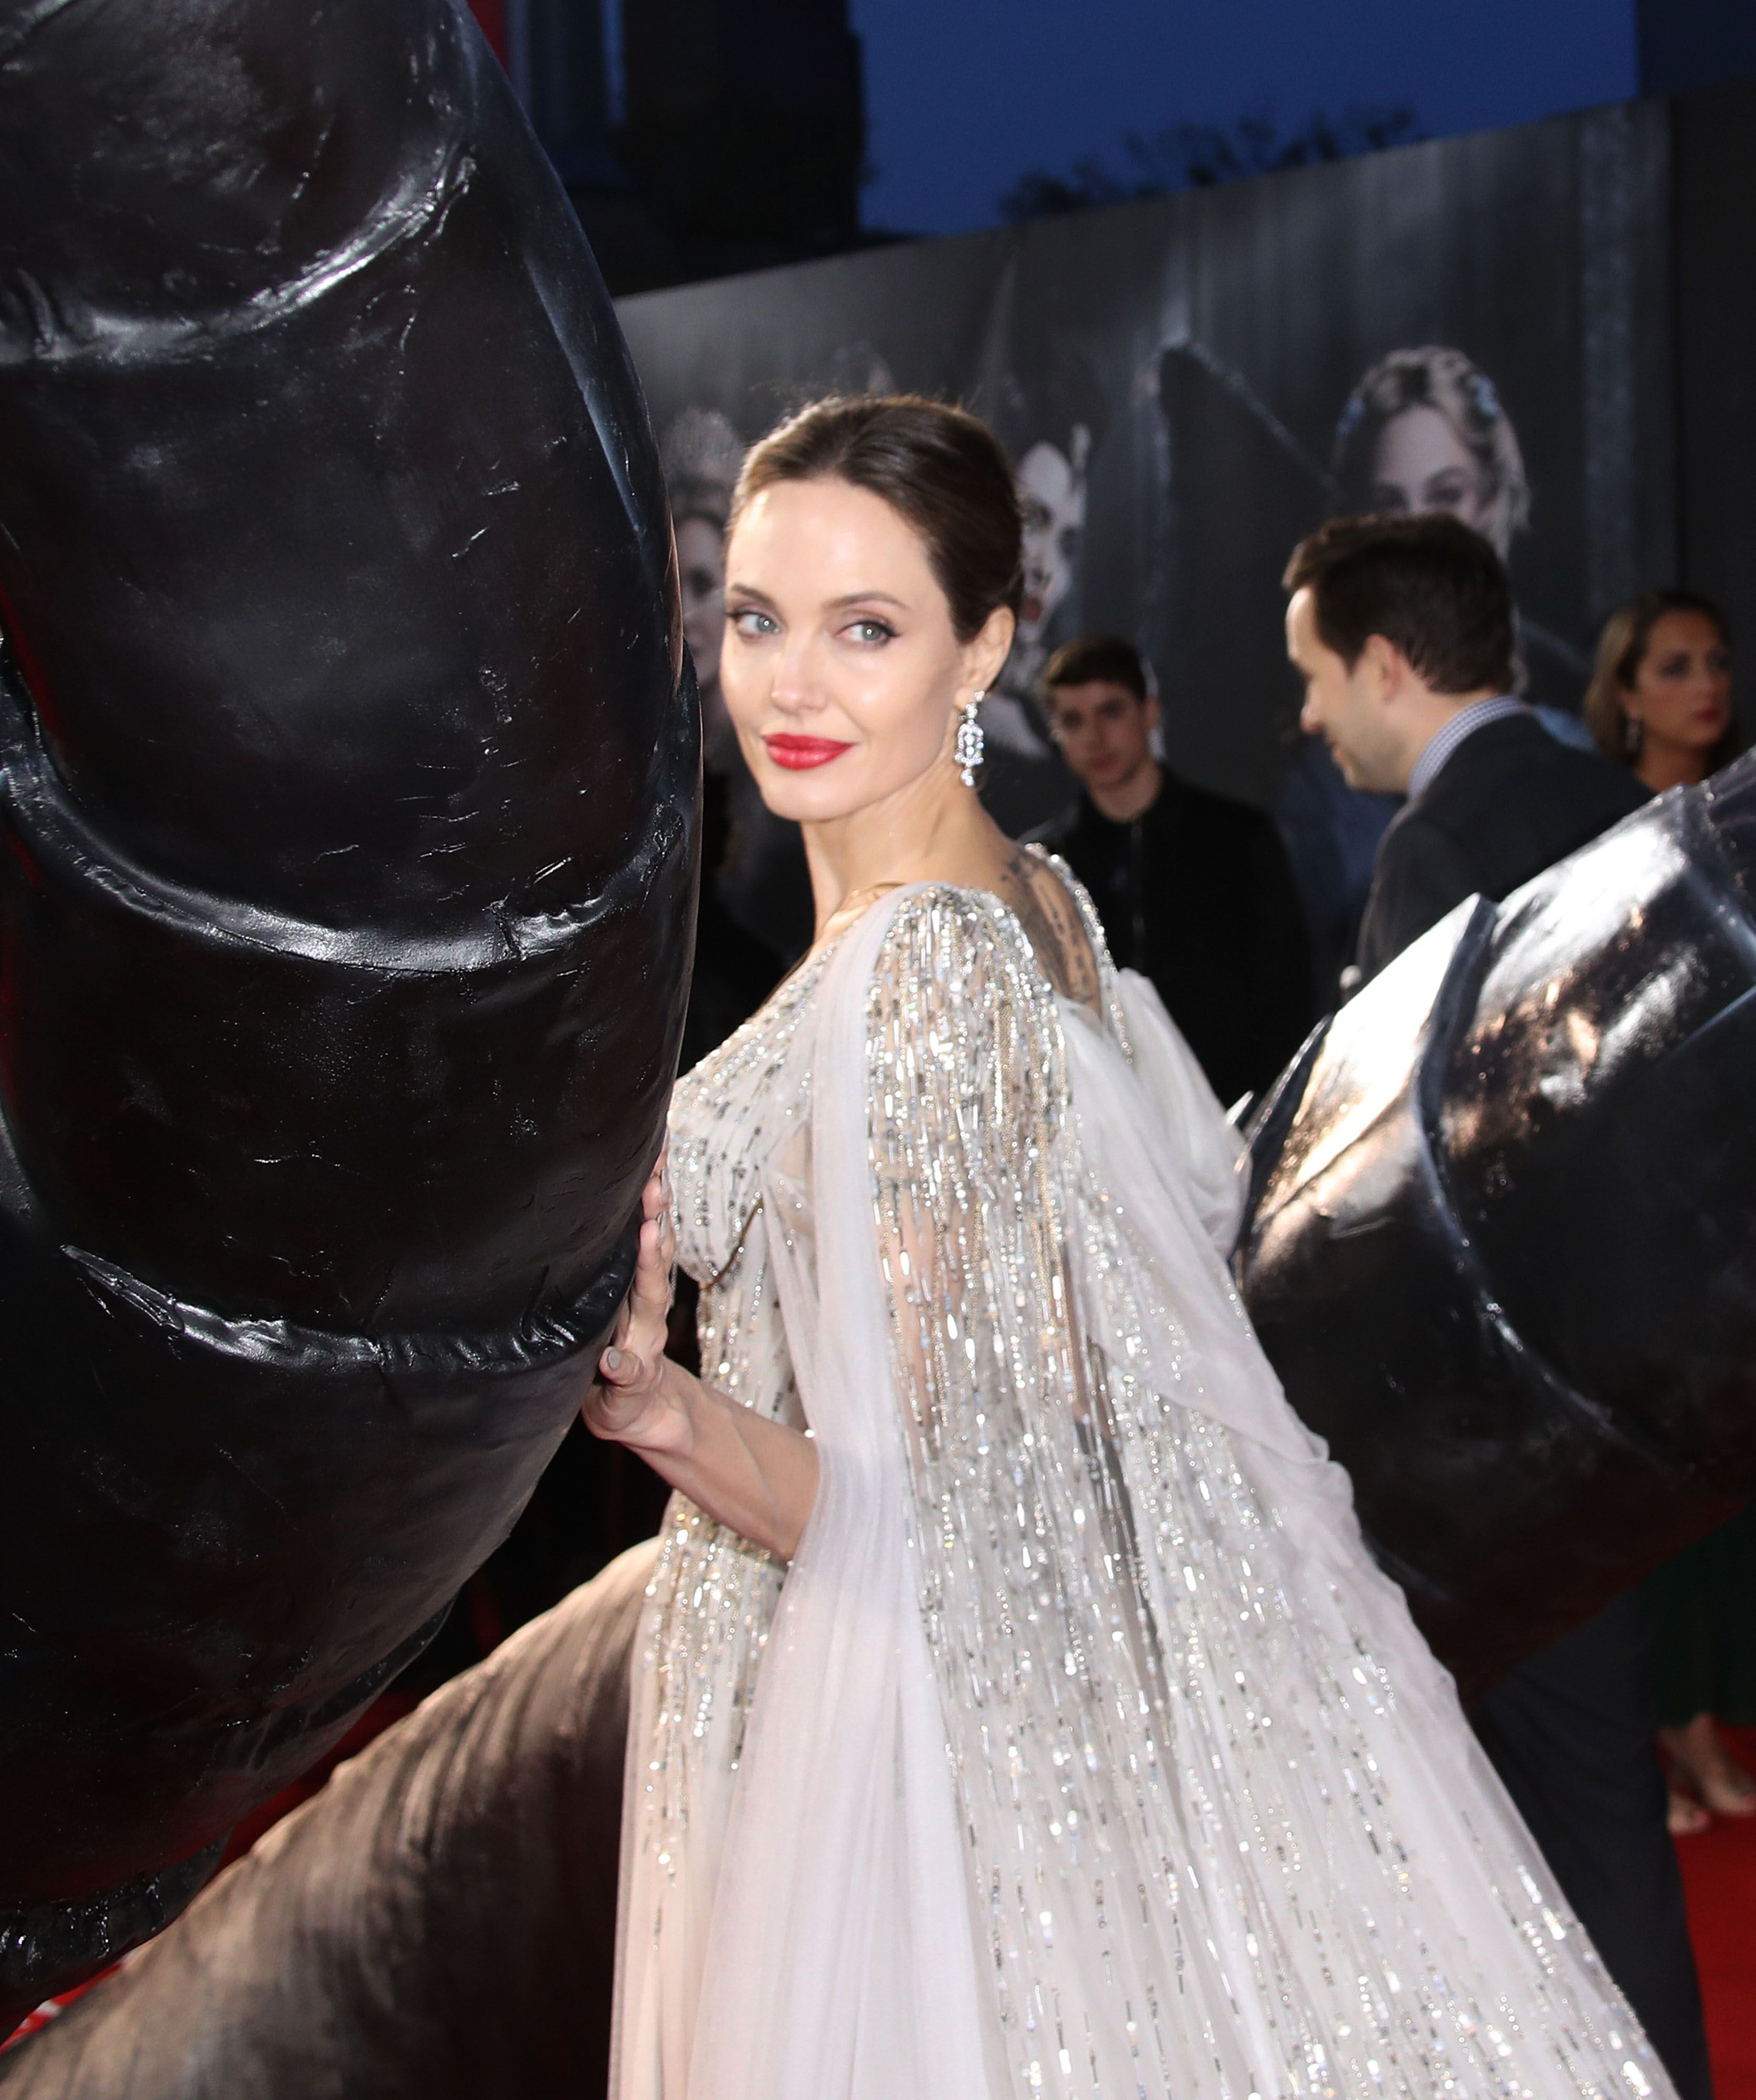 Angelina Jolie Wears A White Gown To Maleficent London Premiere